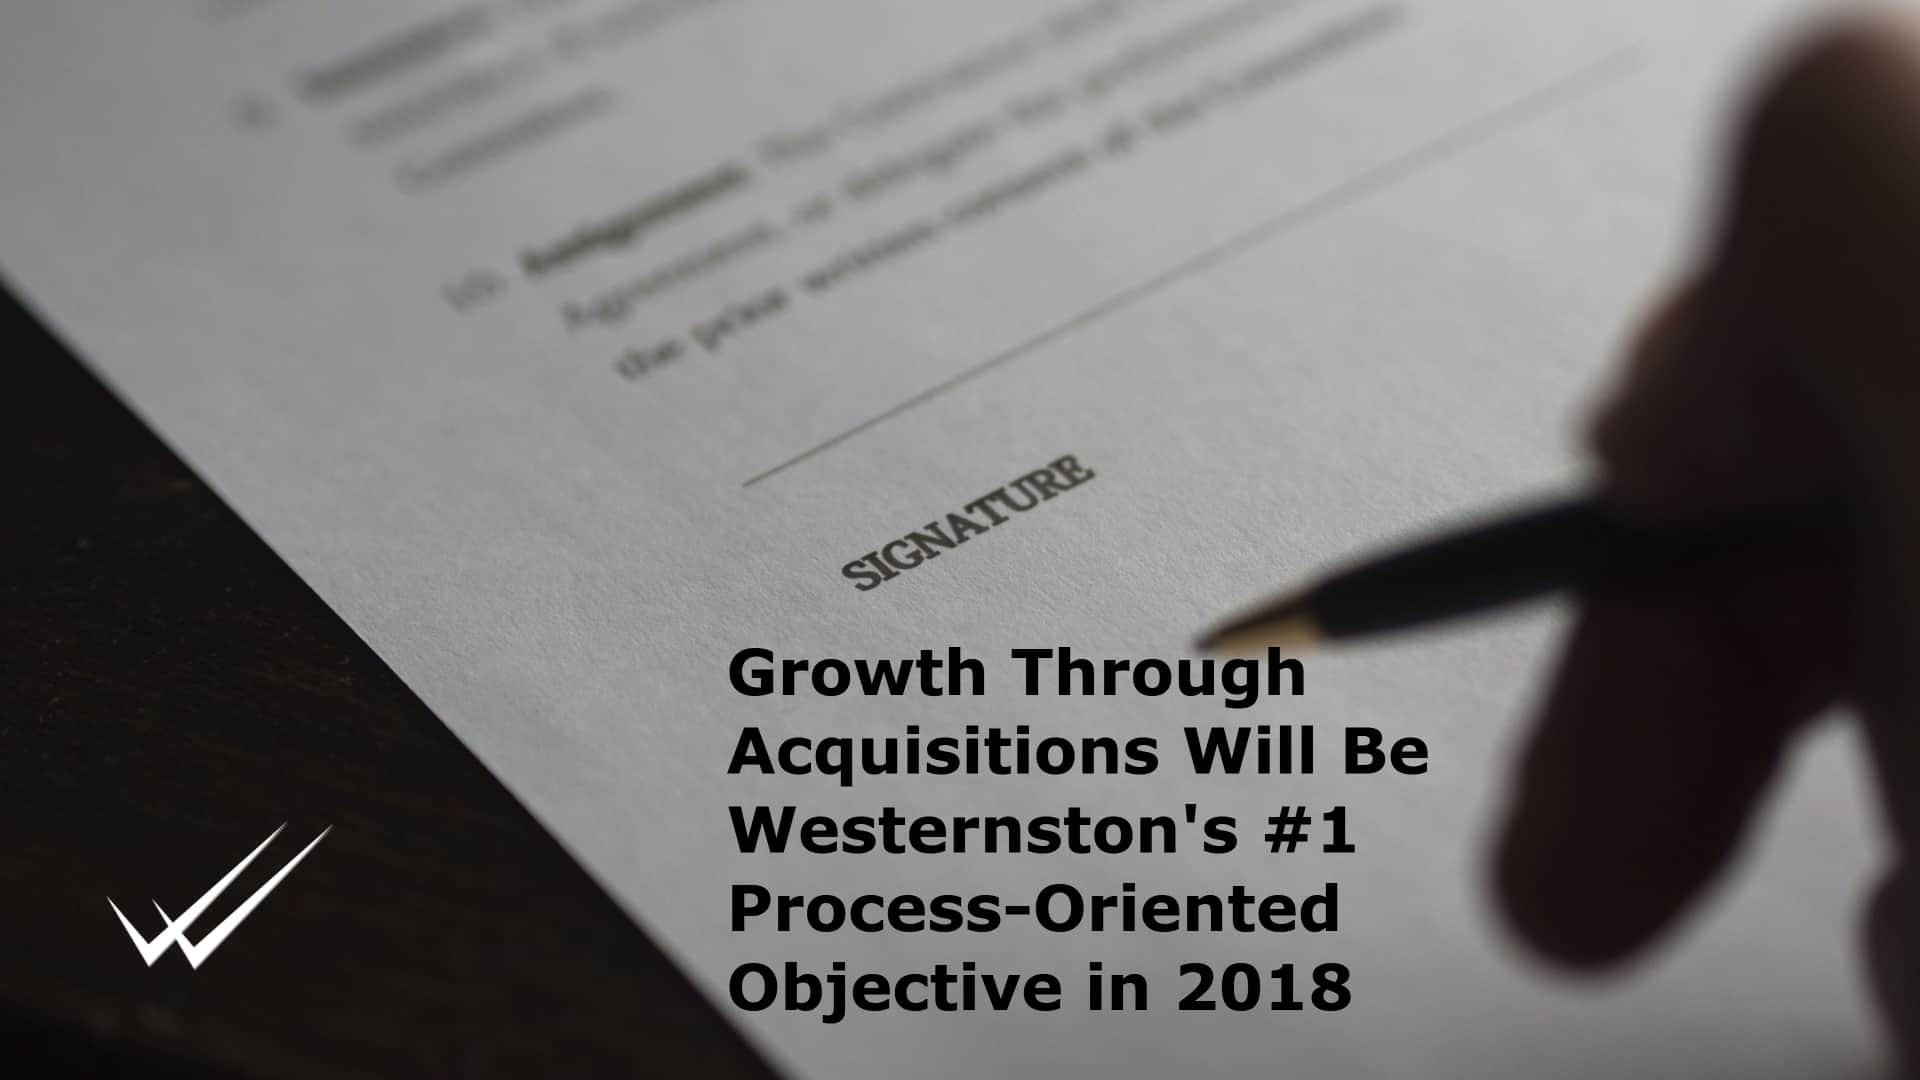 Growth through business-acquisitions will be #1 of the process-based objectives for Westernston in 2018 and beyond.